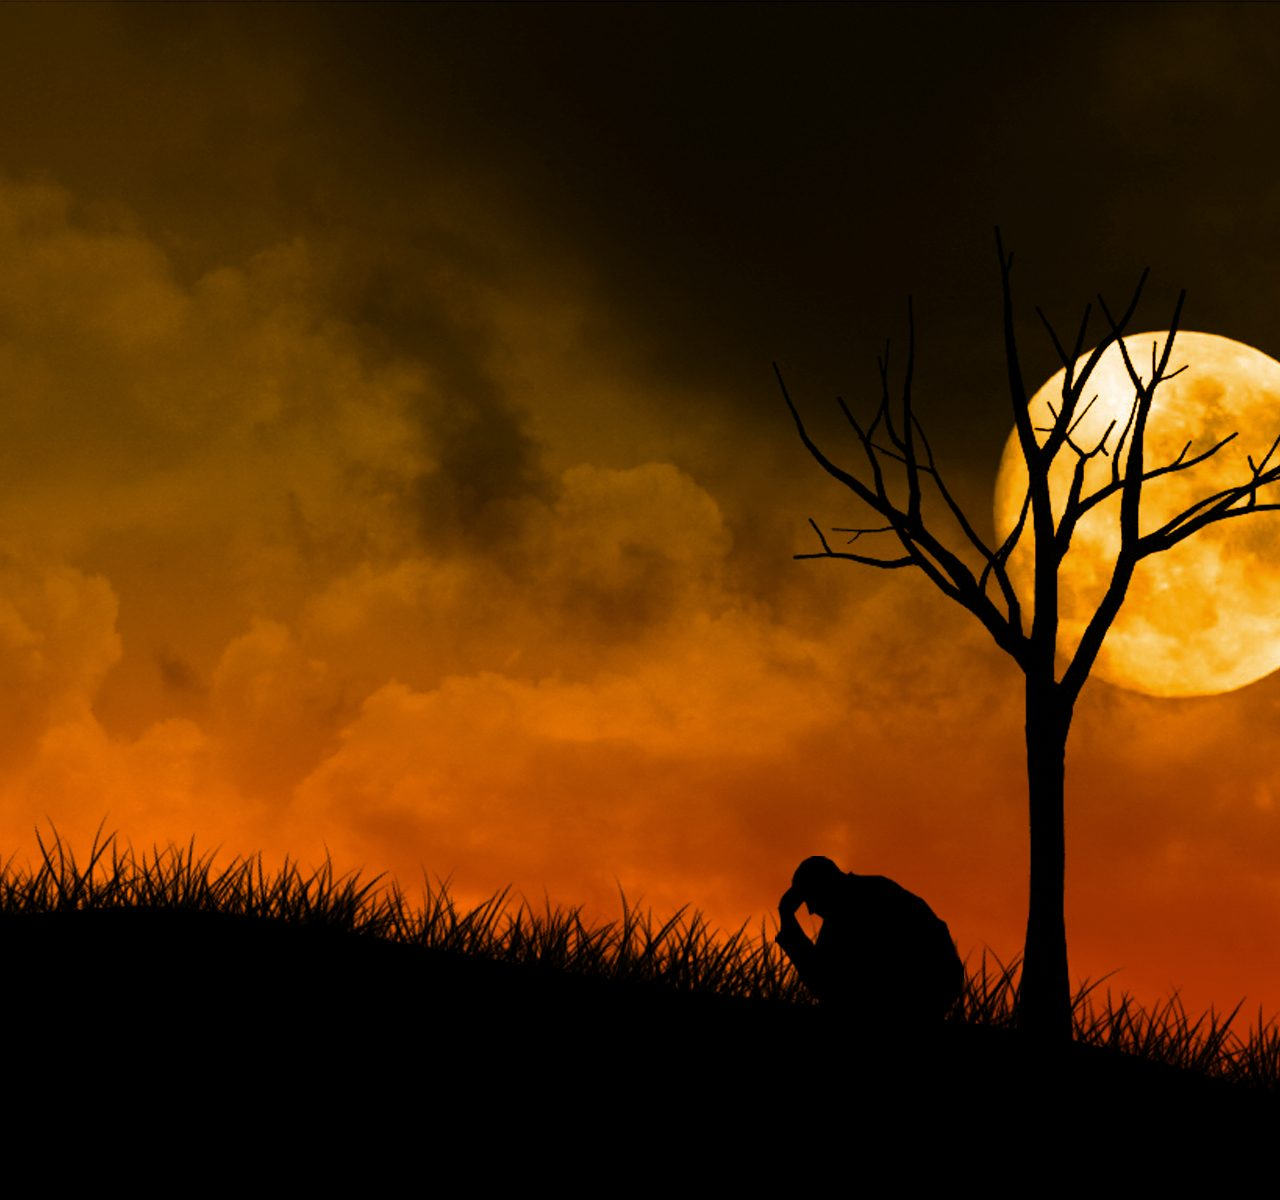 Hd Sad Wallpapers: HD Wallpapers , HD Backgrounds